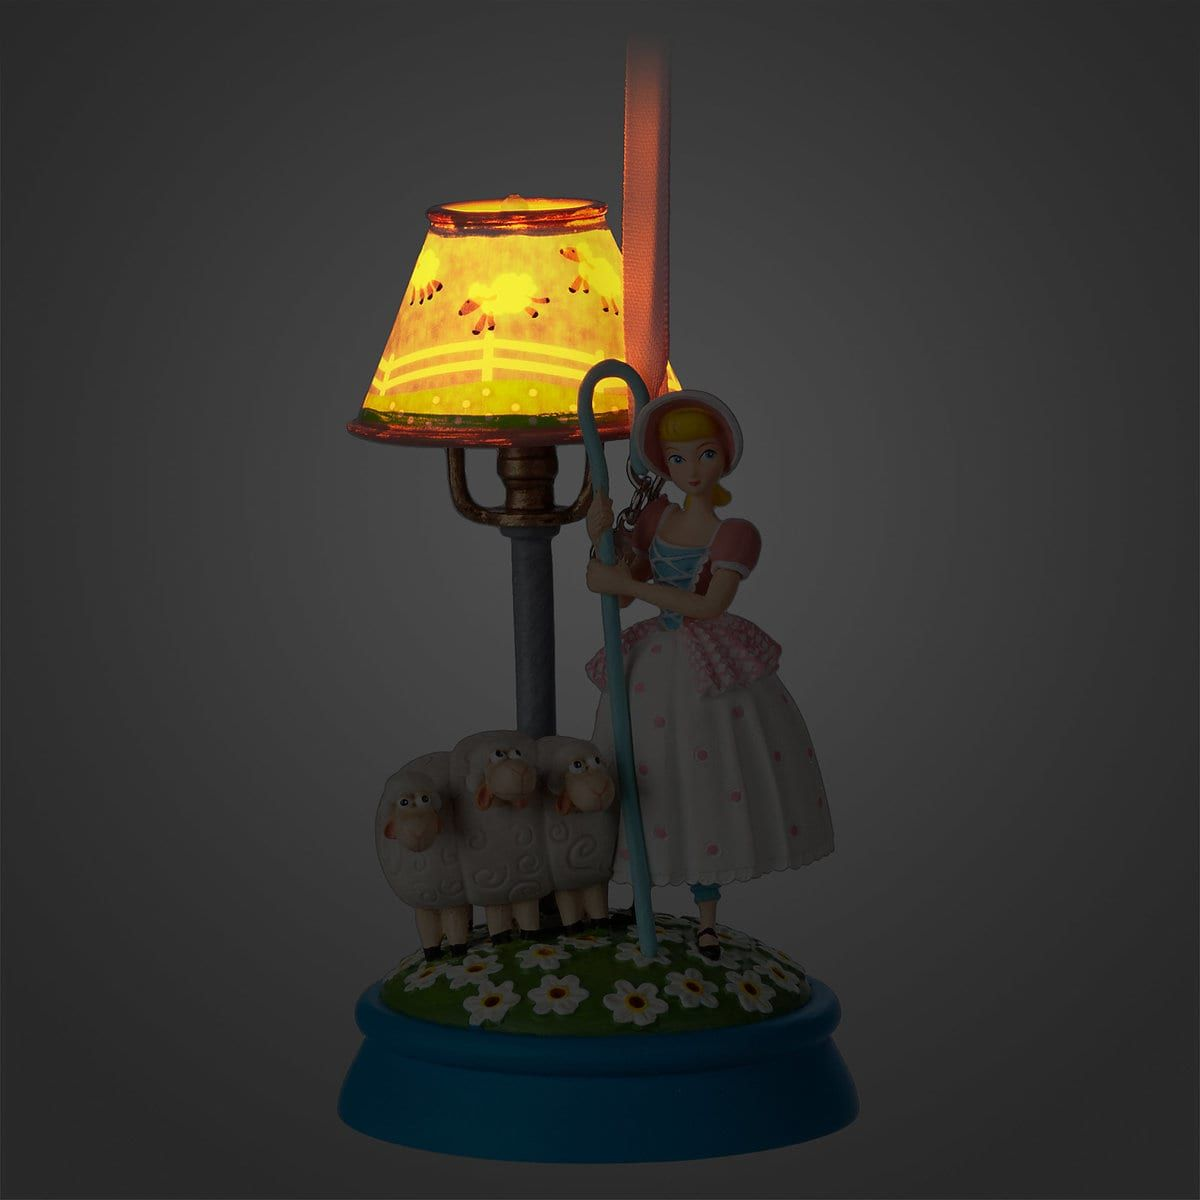 Bo Peep And Sheep Light Up Sketchbook Ornament Toy Story 4 Sketchbook Ornaments Novelty Lamp Hanging Ornaments